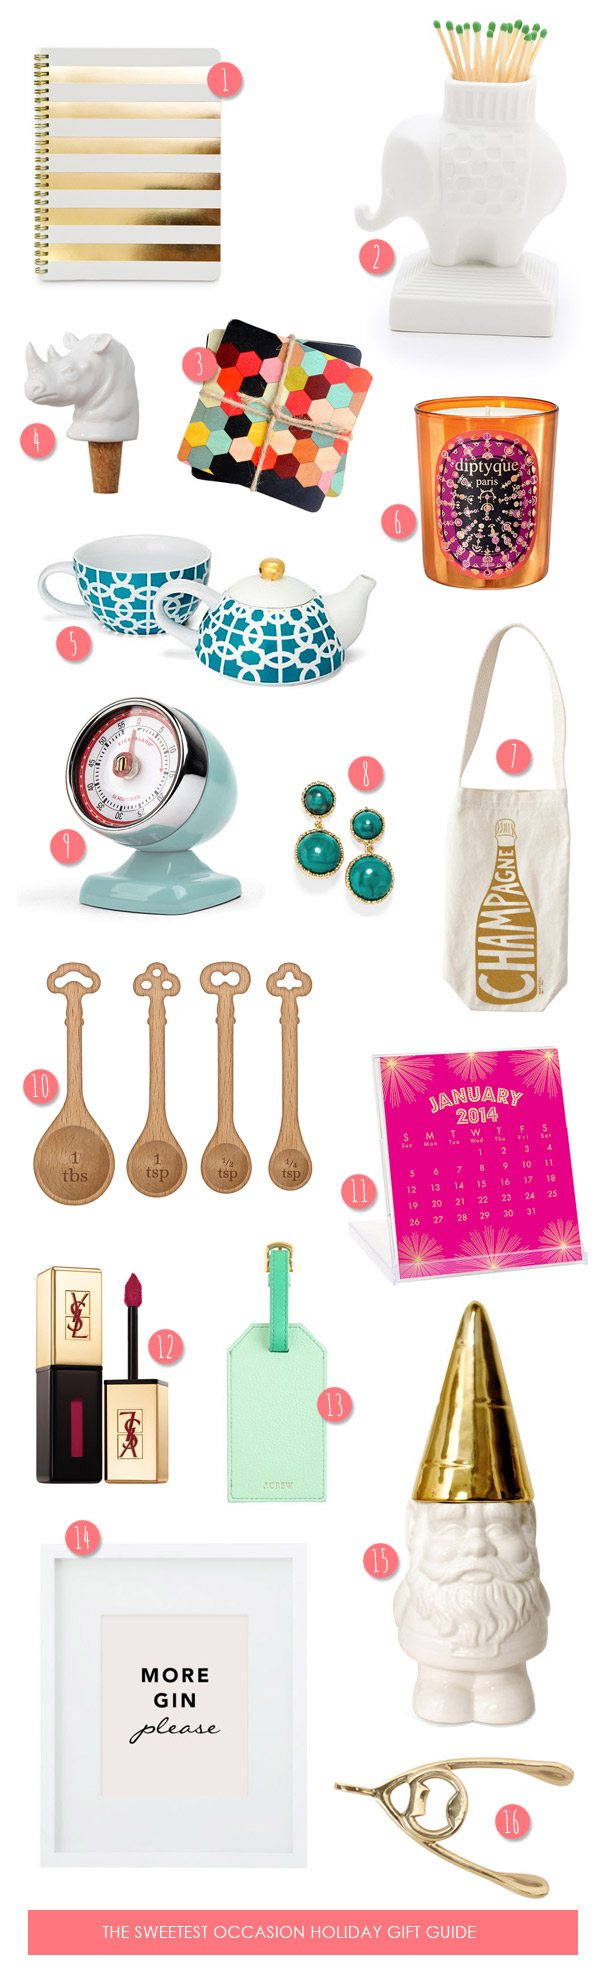 The gift guide fabulous hostess gifts the sweetest Hostess gift